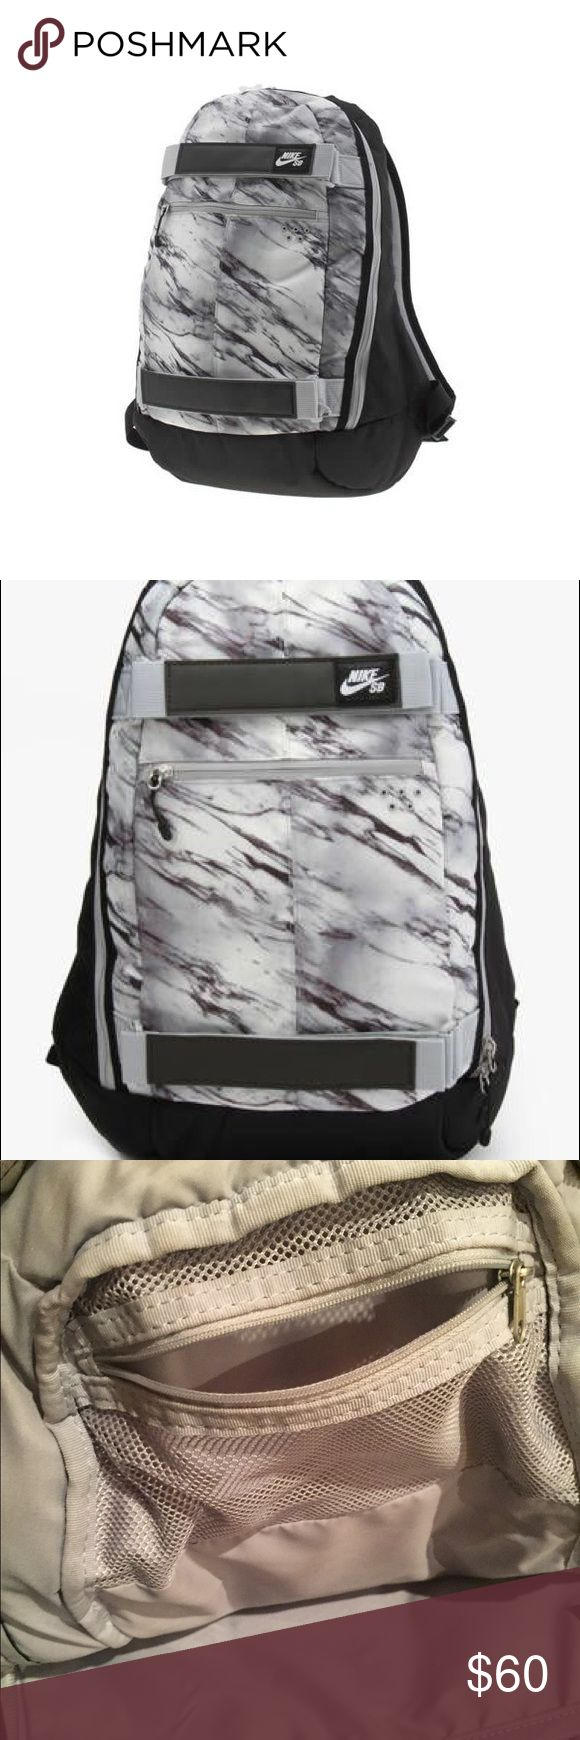 NIKE Marble Backpack This Nike SB marble print backpack is STUNNING! You're sure to be the most stylish on campus or in the halls with this amazing backpack! The backpack features a laptop pocket on the inside, a small zipper pocket on the outside and another small zipper pocket on the inside perfect for pens and pencils! Nike Bags Backpacks